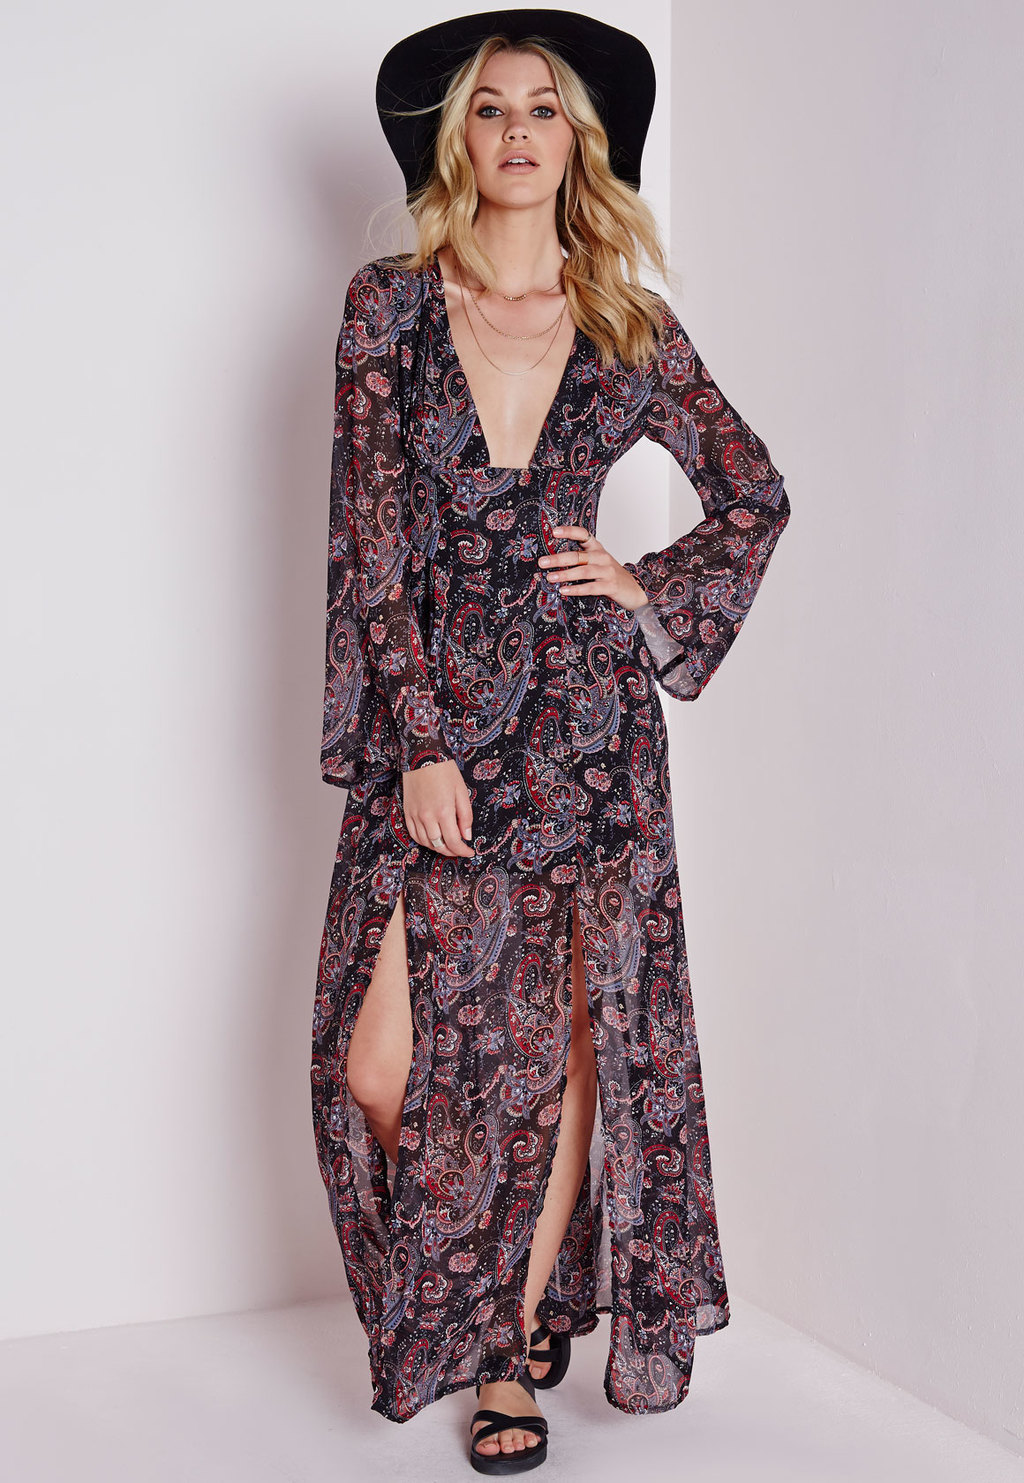 Tie Back Floaty Maxi Dress Black Paisley, Black - neckline: plunge; sleeve style: angel/waterfall; style: maxi dress; length: ankle length; pattern: paisley; hip detail: draws attention to hips; predominant colour: black; occasions: casual, holiday; fit: body skimming; fibres: polyester/polyamide - stretch; sleeve length: long sleeve; texture group: sheer fabrics/chiffon/organza etc.; pattern type: fabric; pattern size: big & busy; season: s/s 2015; wardrobe: highlight